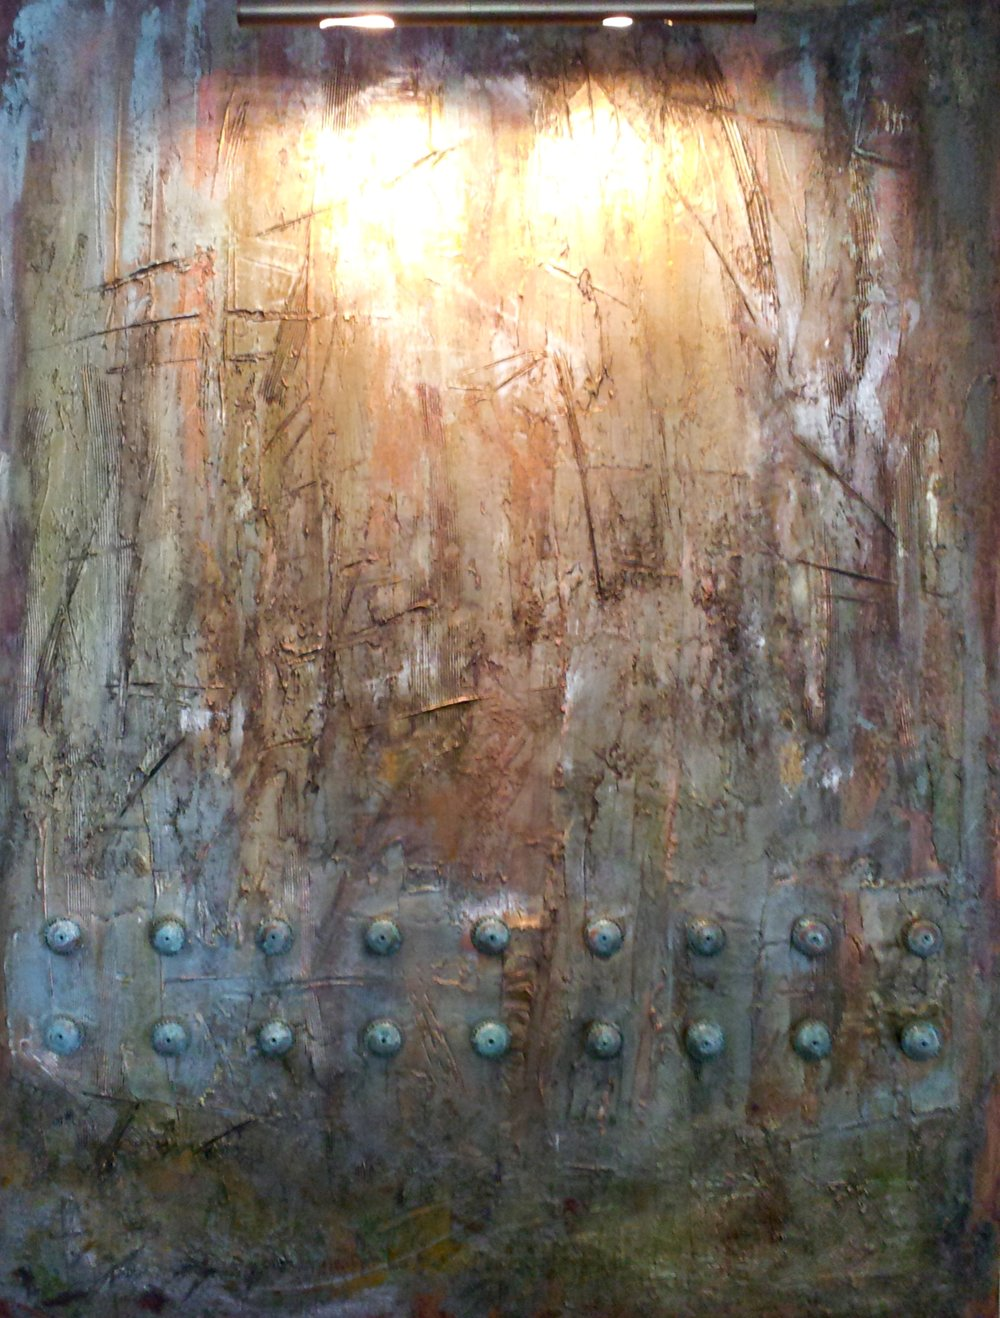 The Effects of Light  Mixed media and oxidized copper on canvas  48 x 36 x 1.5 inches  $4200 USD